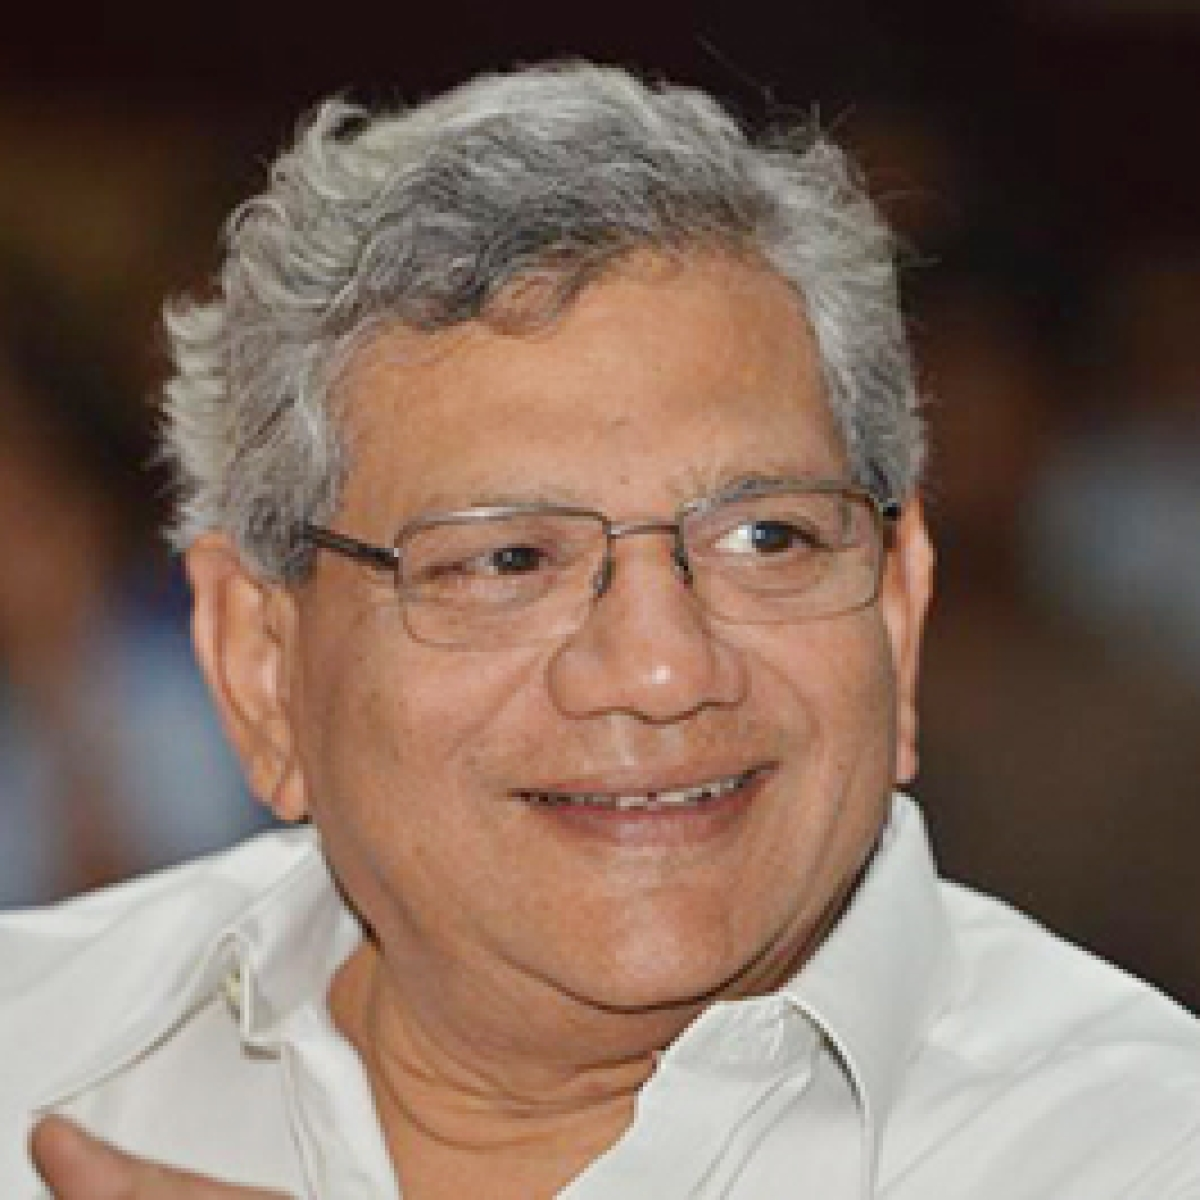 Selling 'family silver' to meet daily expenditures does not makes economic sense: Sitaram Yechury